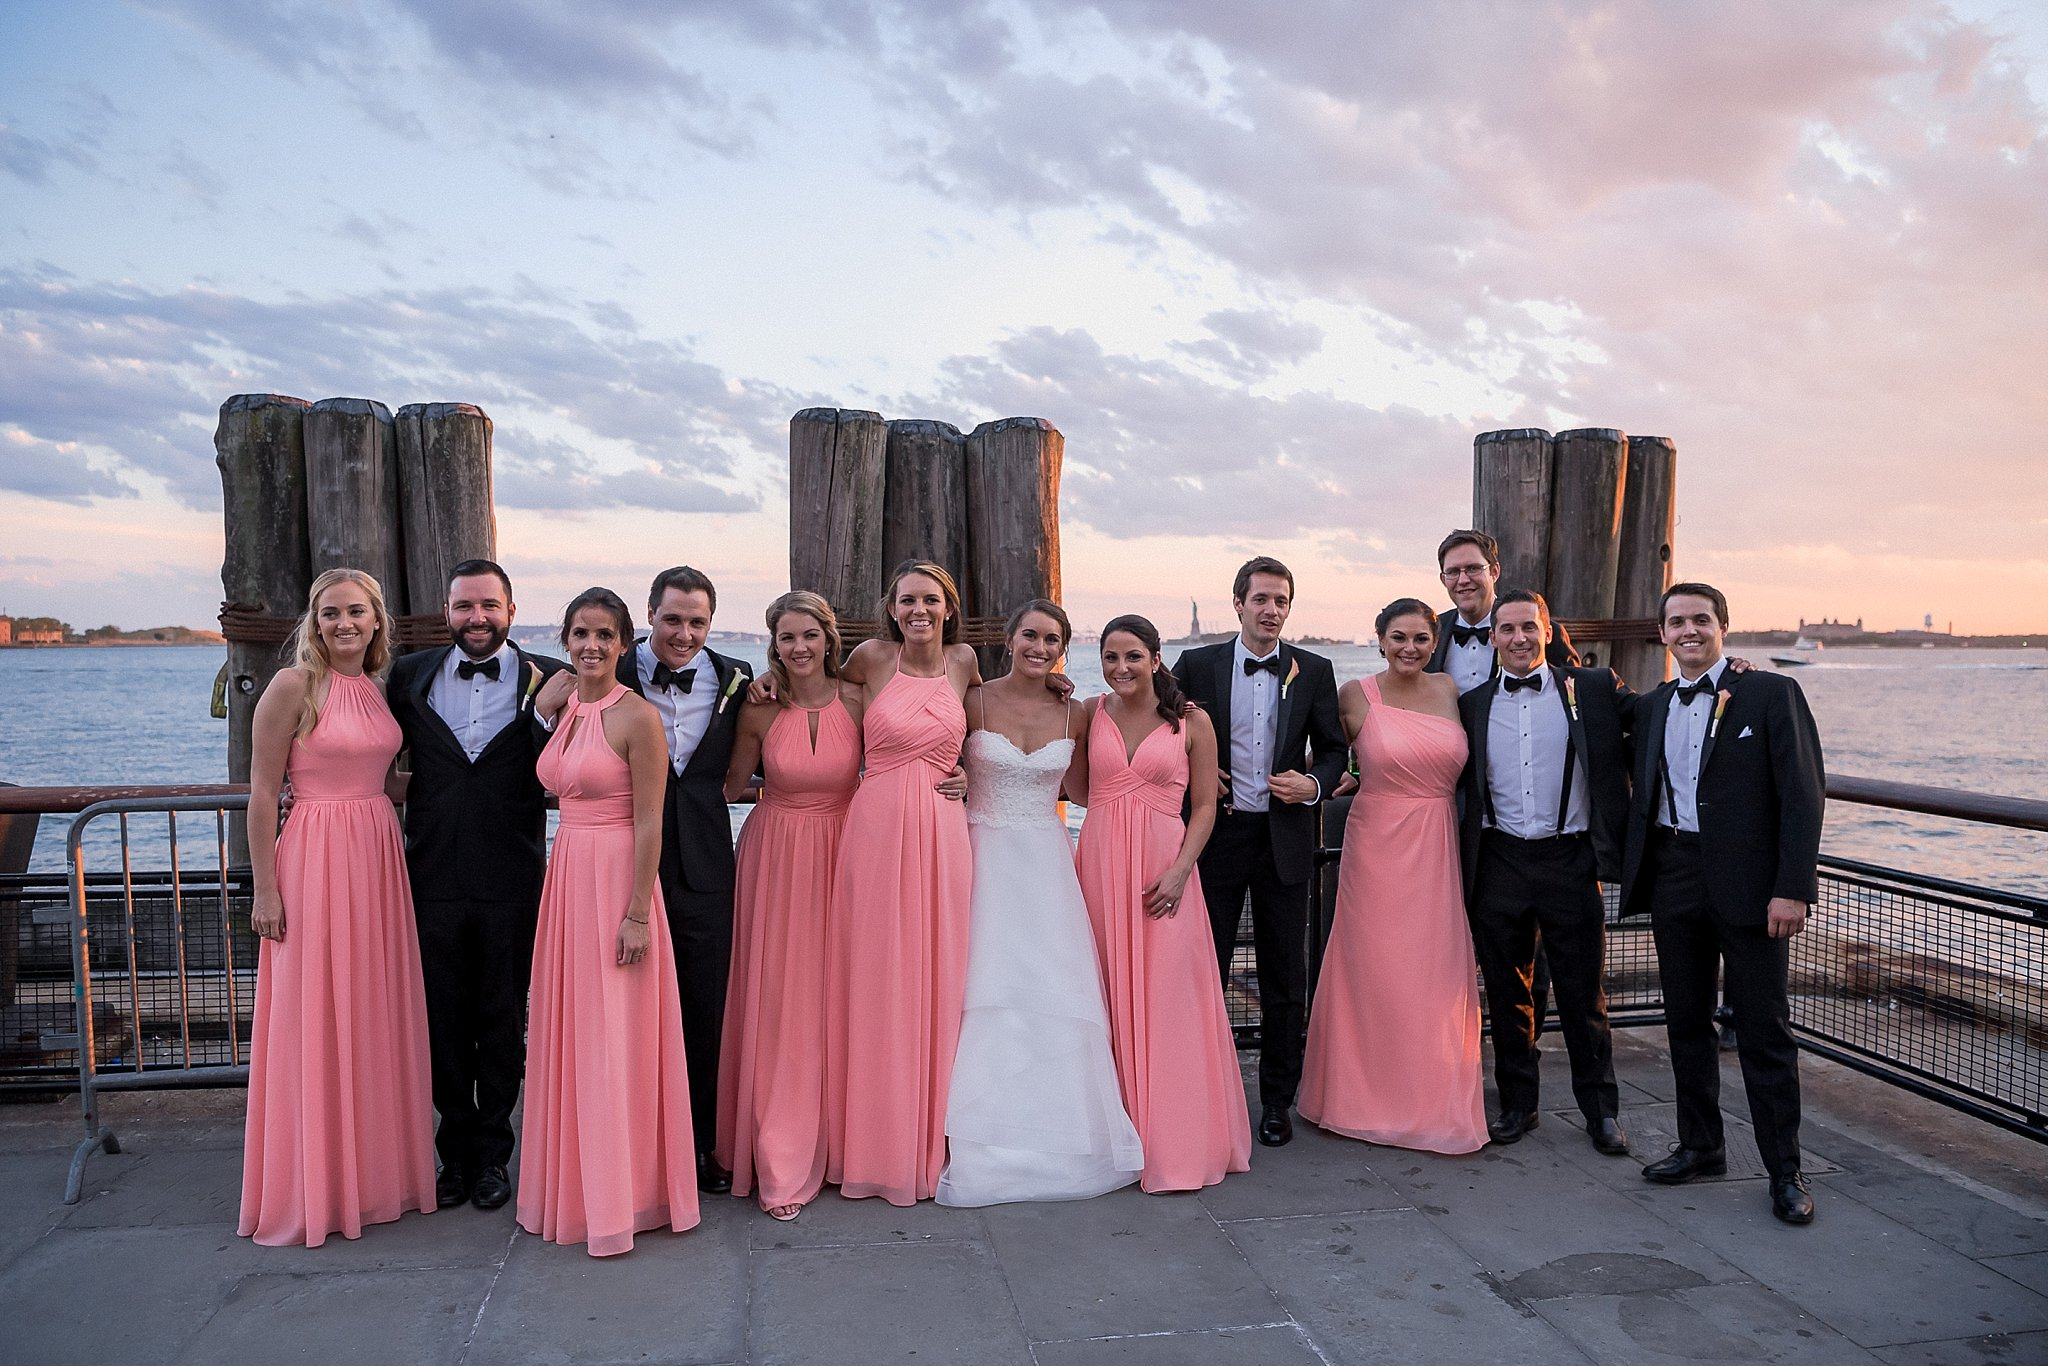 Brides and her Friends for a formal shoot, , photographed by Susan Shek Wedding Photography in New York City, NY.